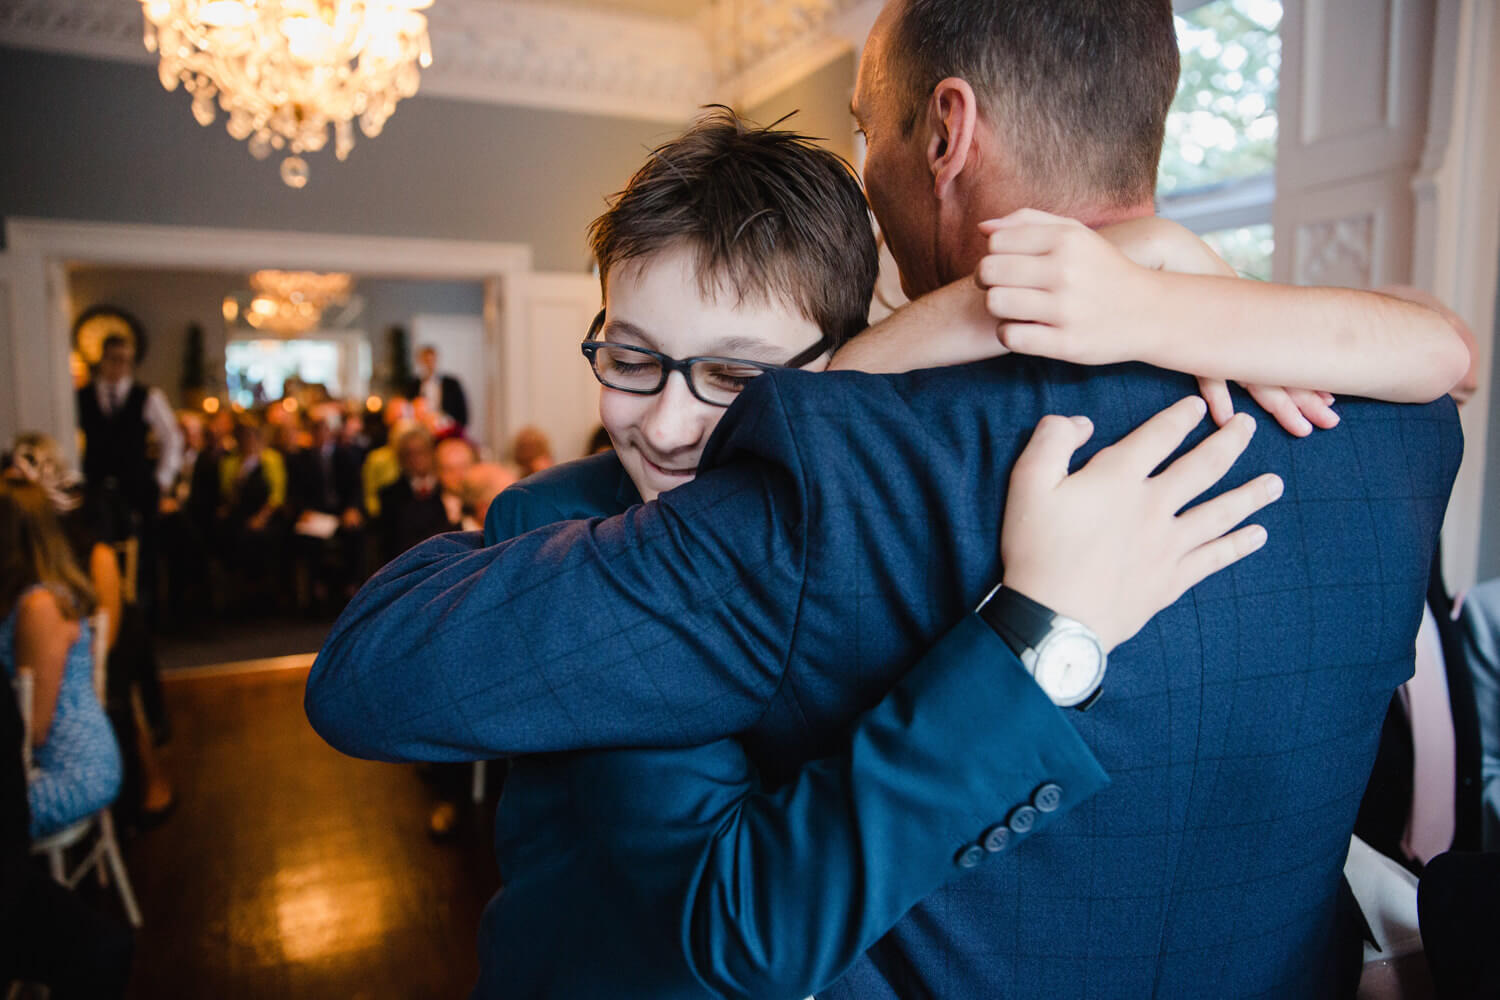 best man shares intimate hug with groom after wedding ceremony